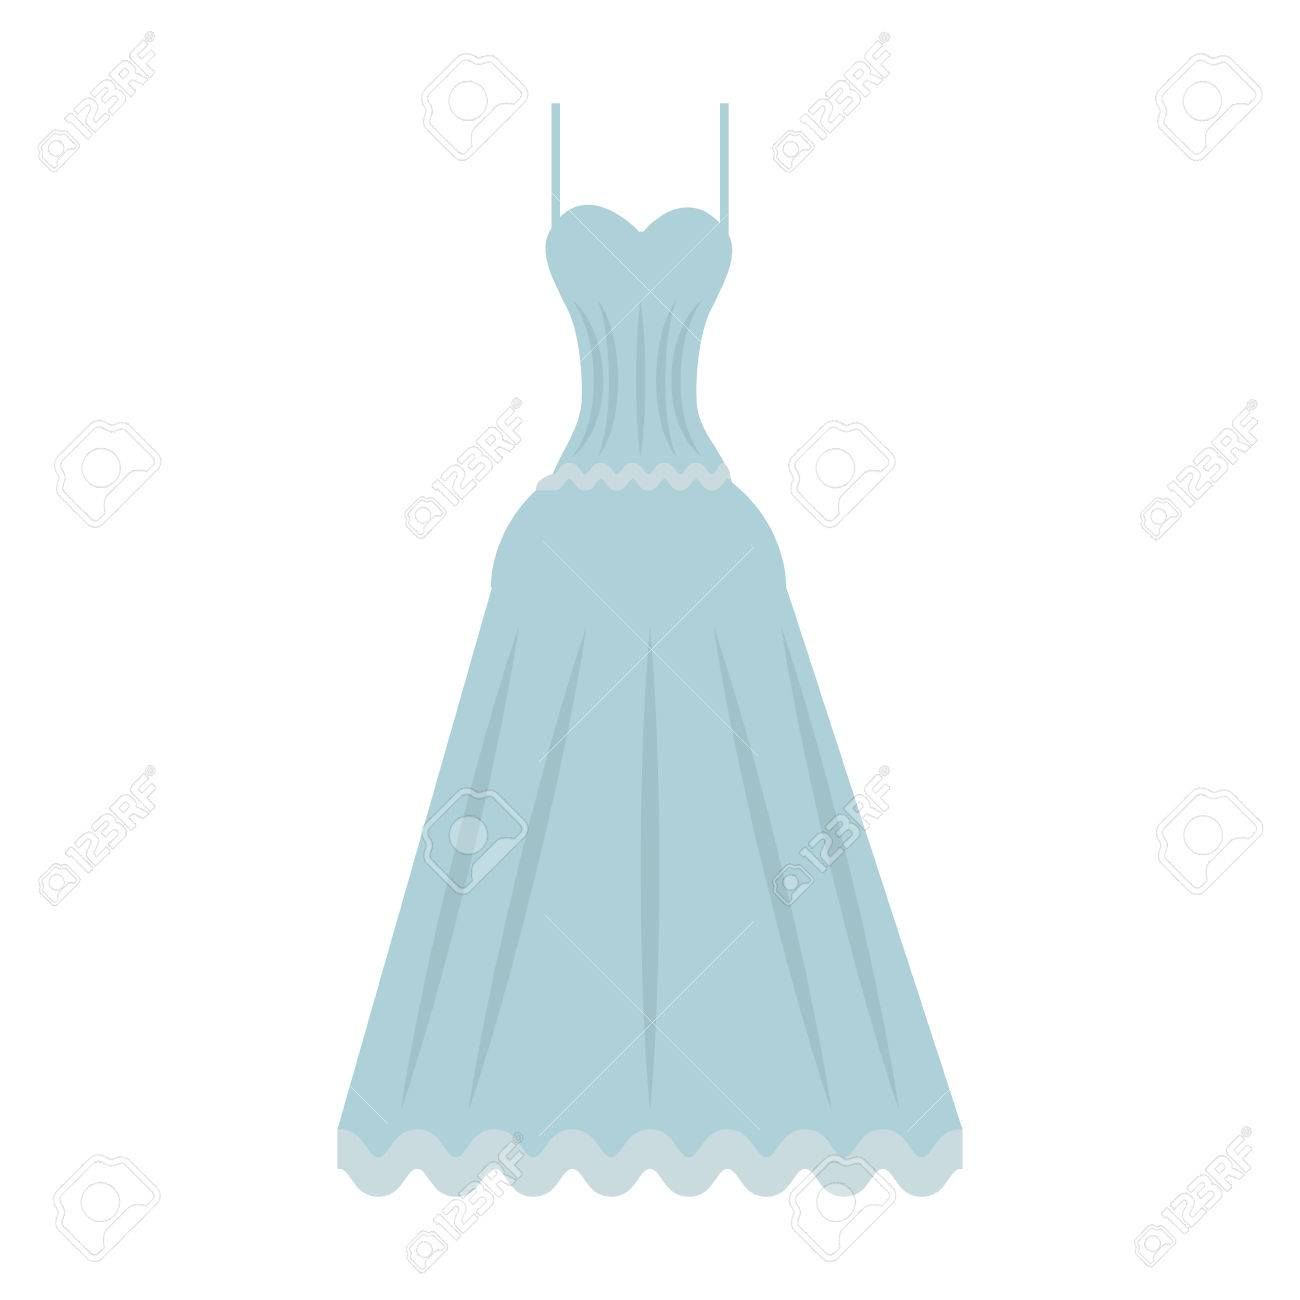 Cute Wedding Dress Icon Vector Illustration Royalty Free Cliparts ...